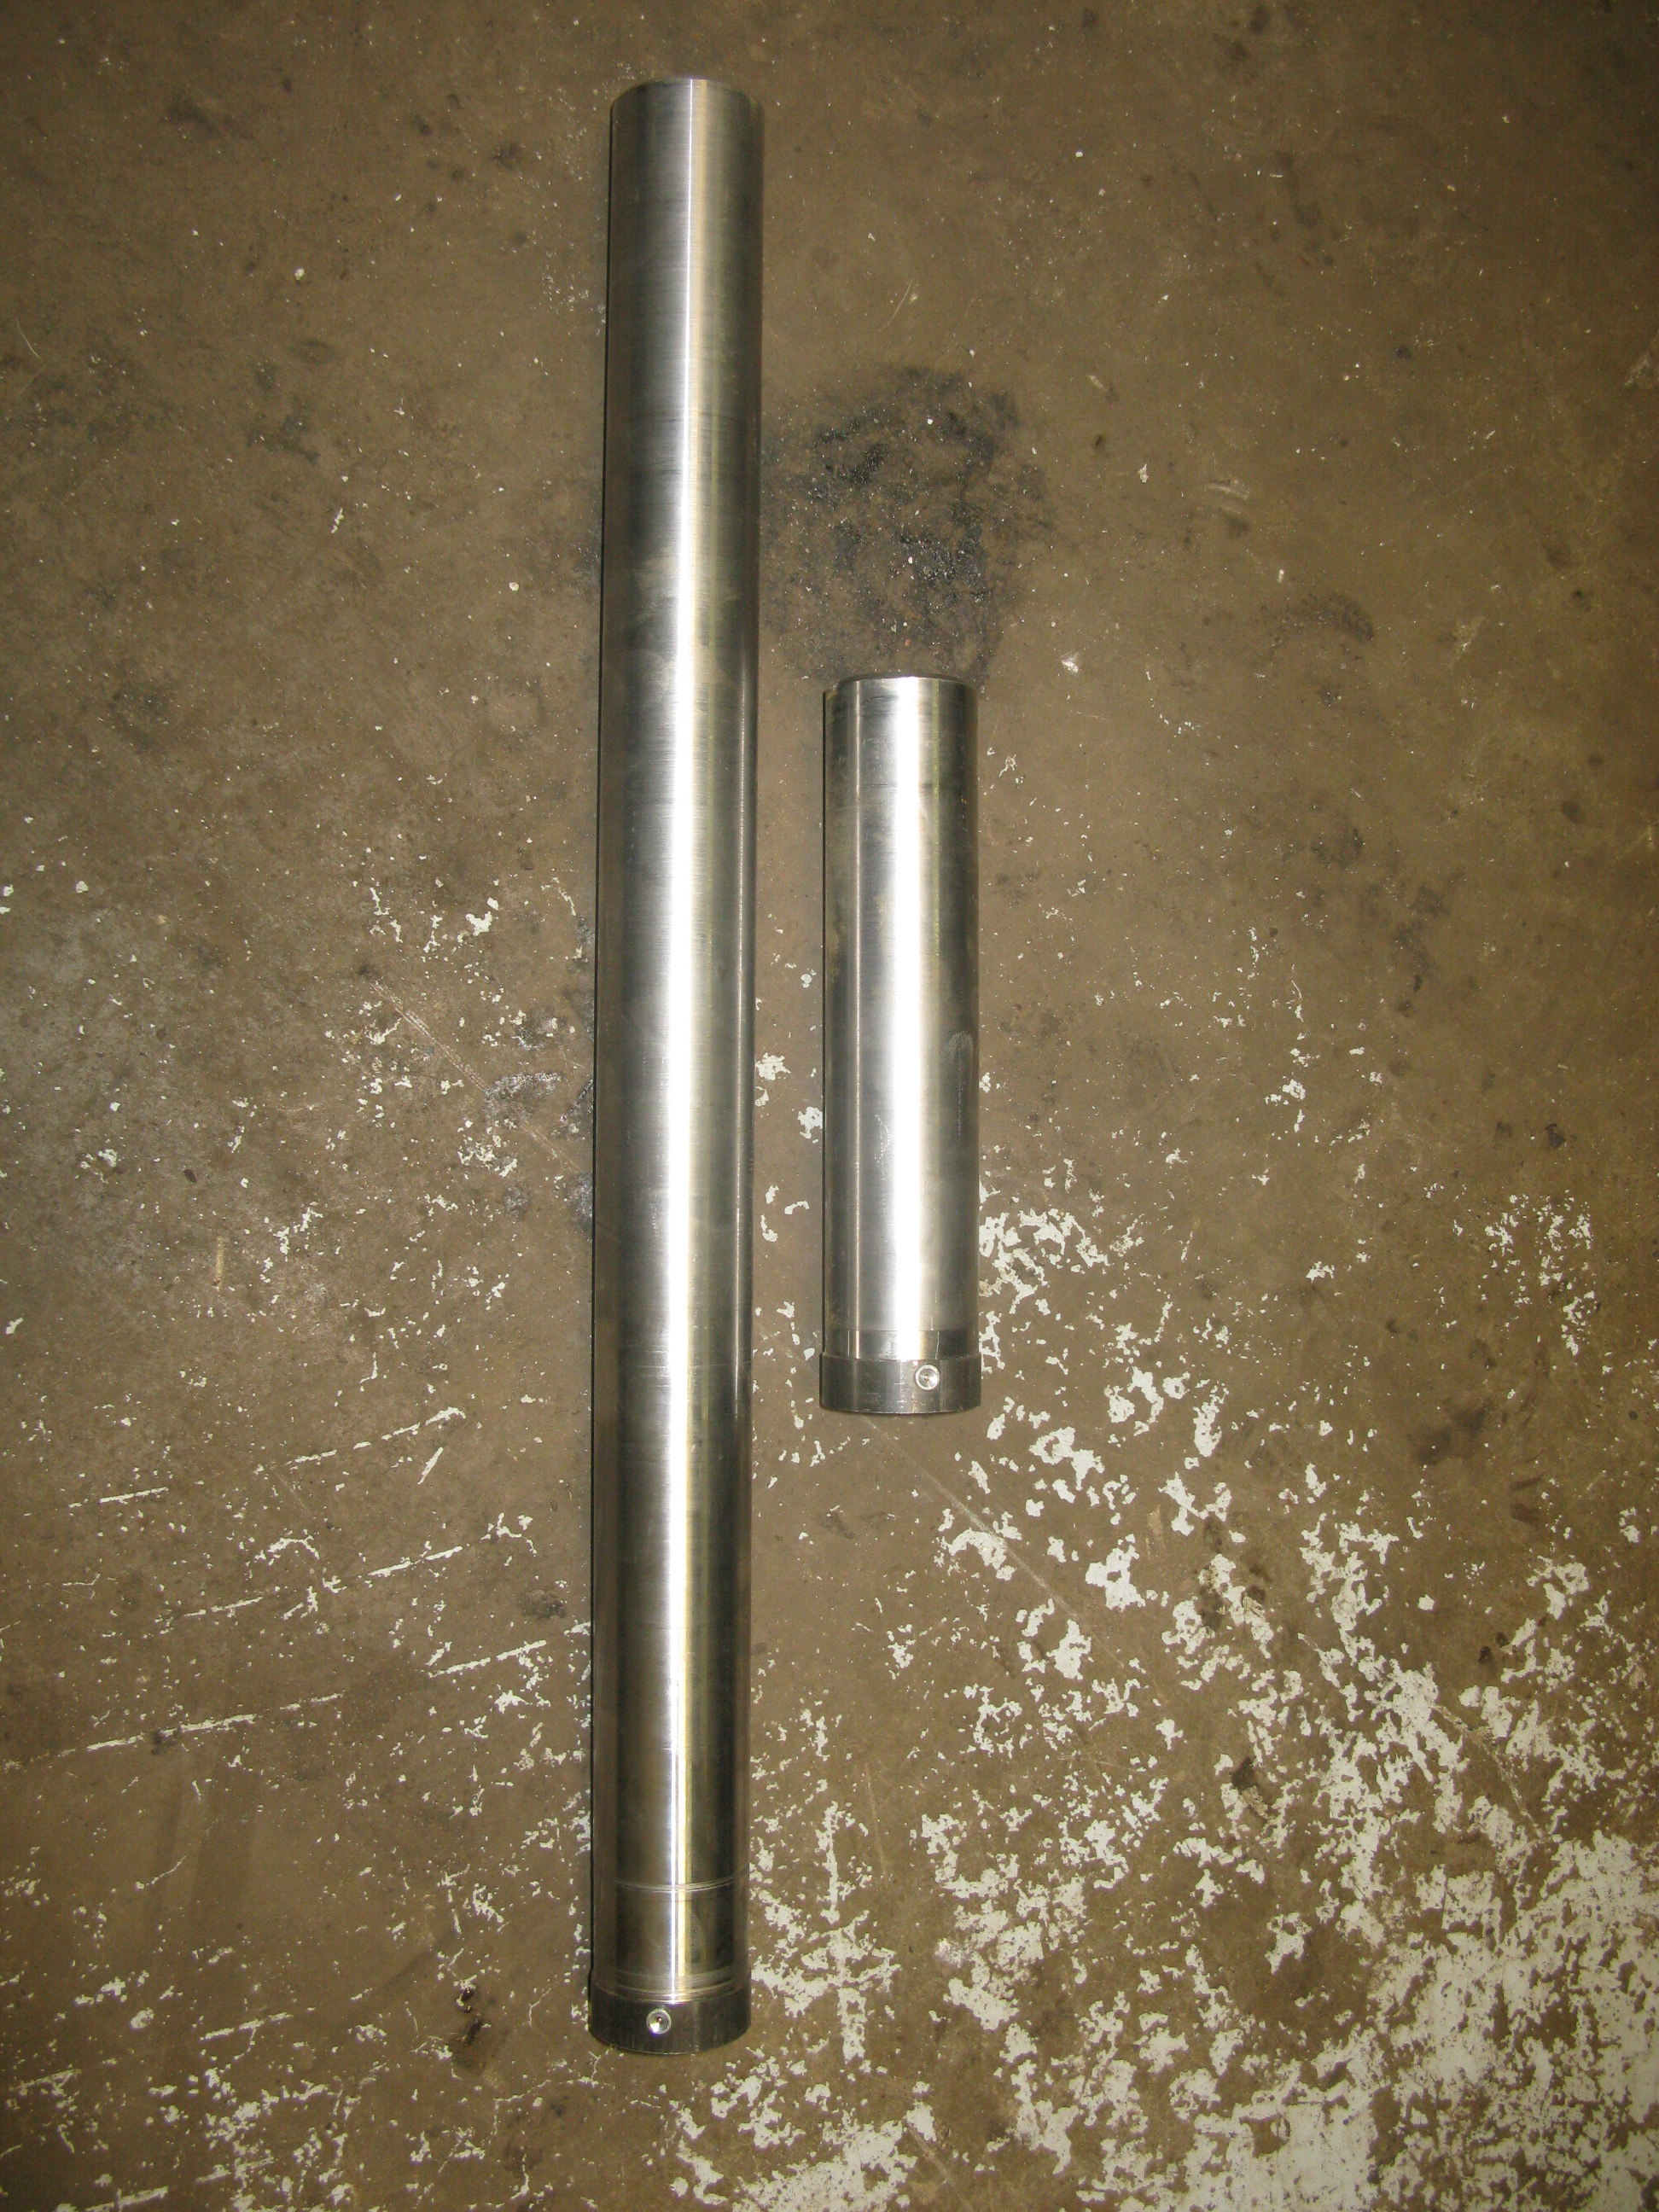 Axle sleeves